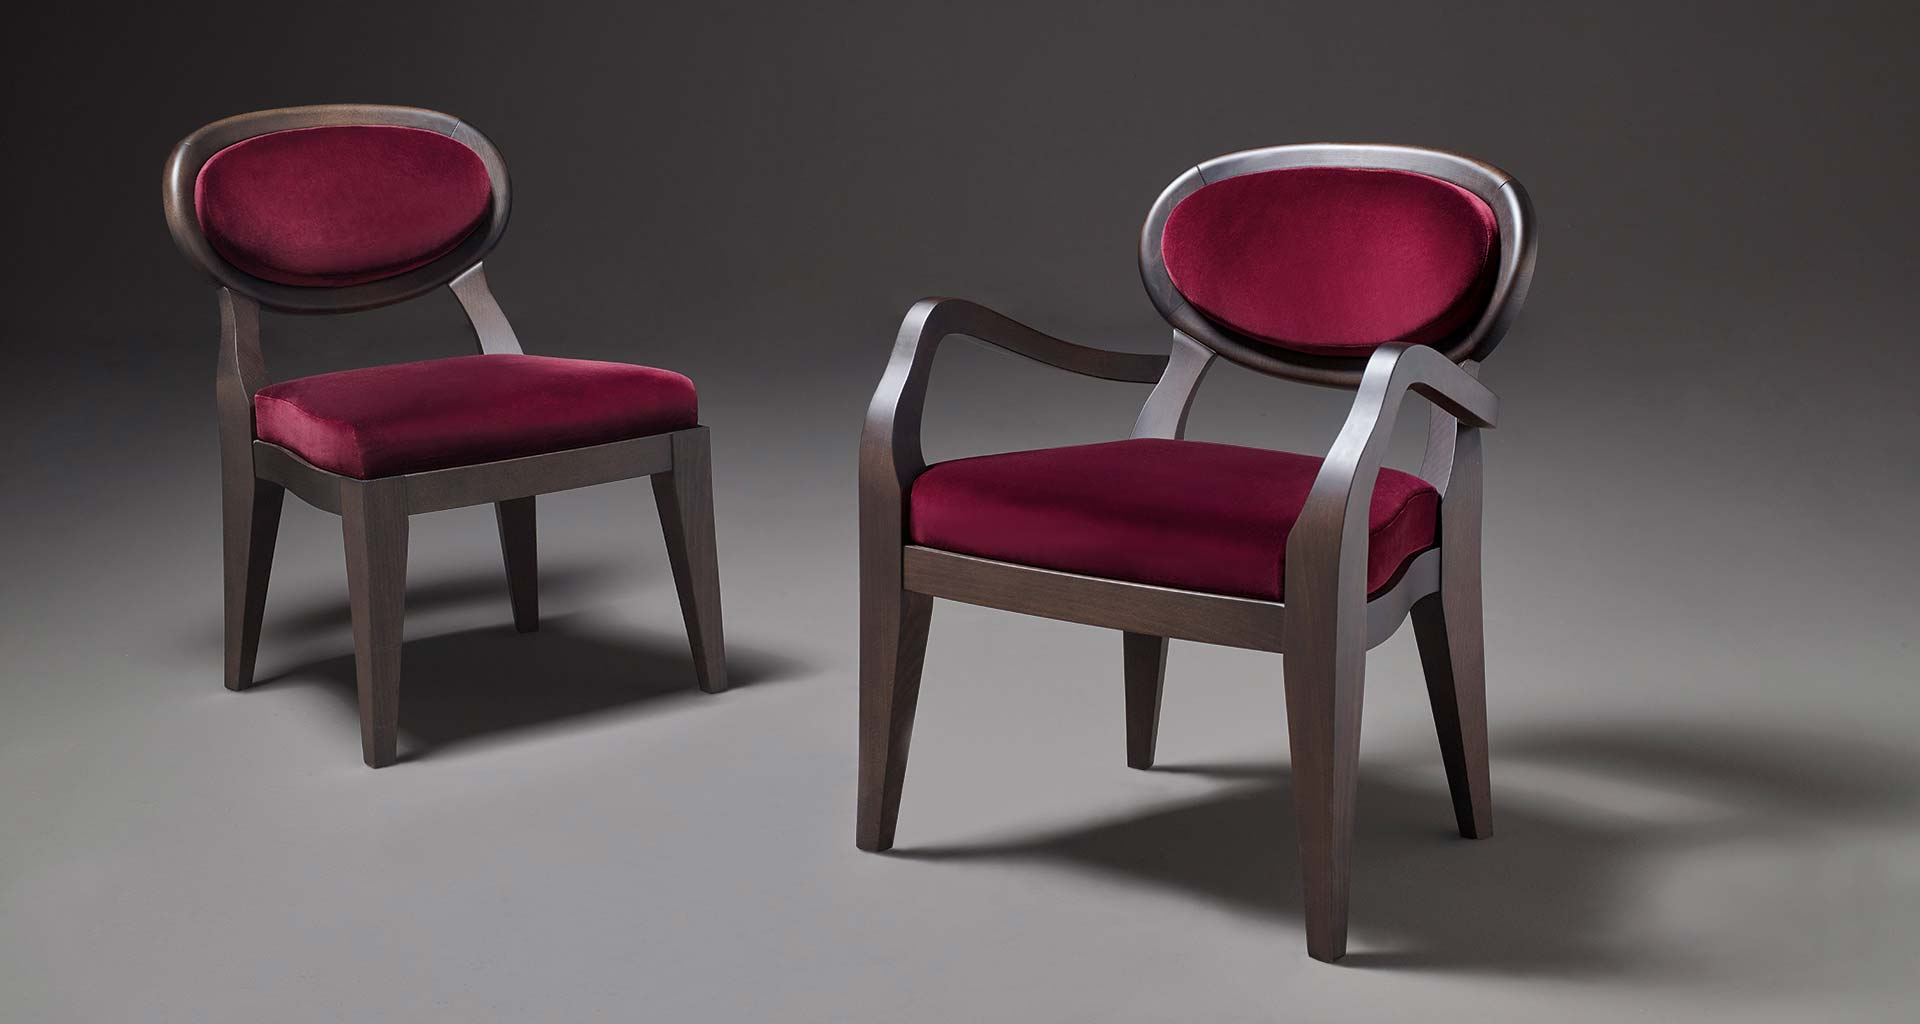 Anima is a wooden and fabric or leather dining chair available with different combinations of fabrics and colors, from Promemoria's catalogue | Promemoria